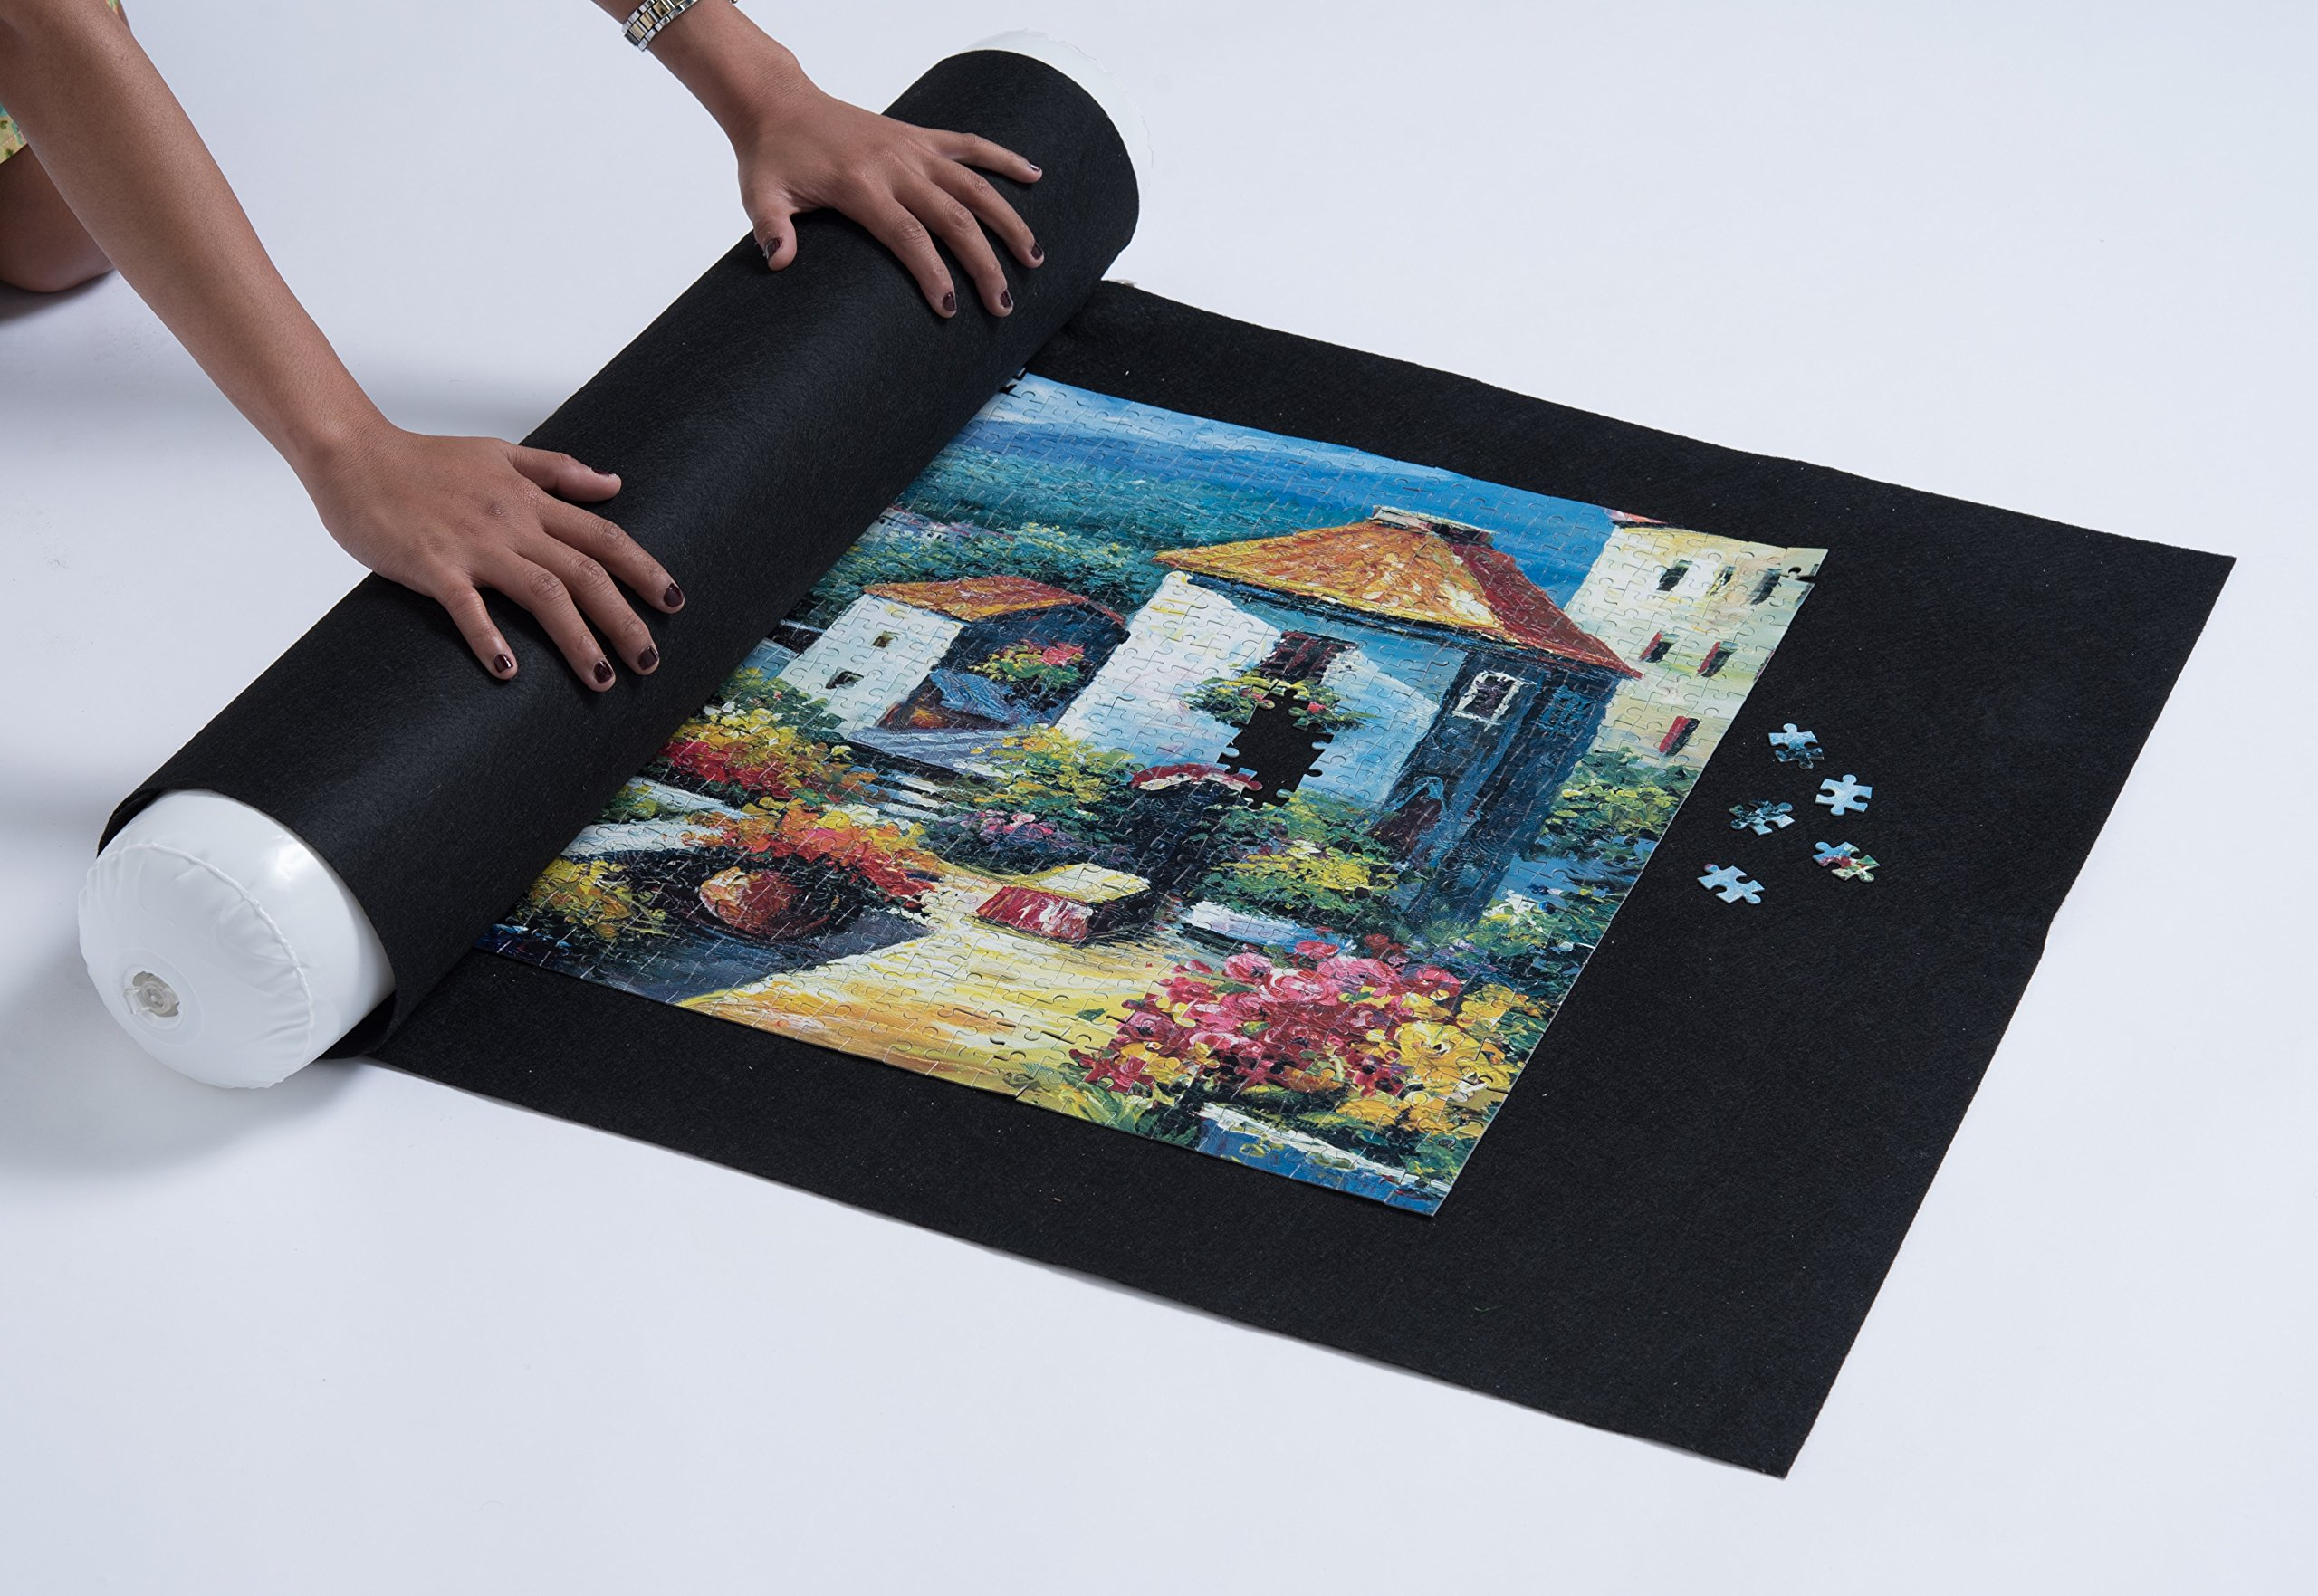 PuzzlePal Jigsaw Puzzle Mat - Portable Puzzle Board